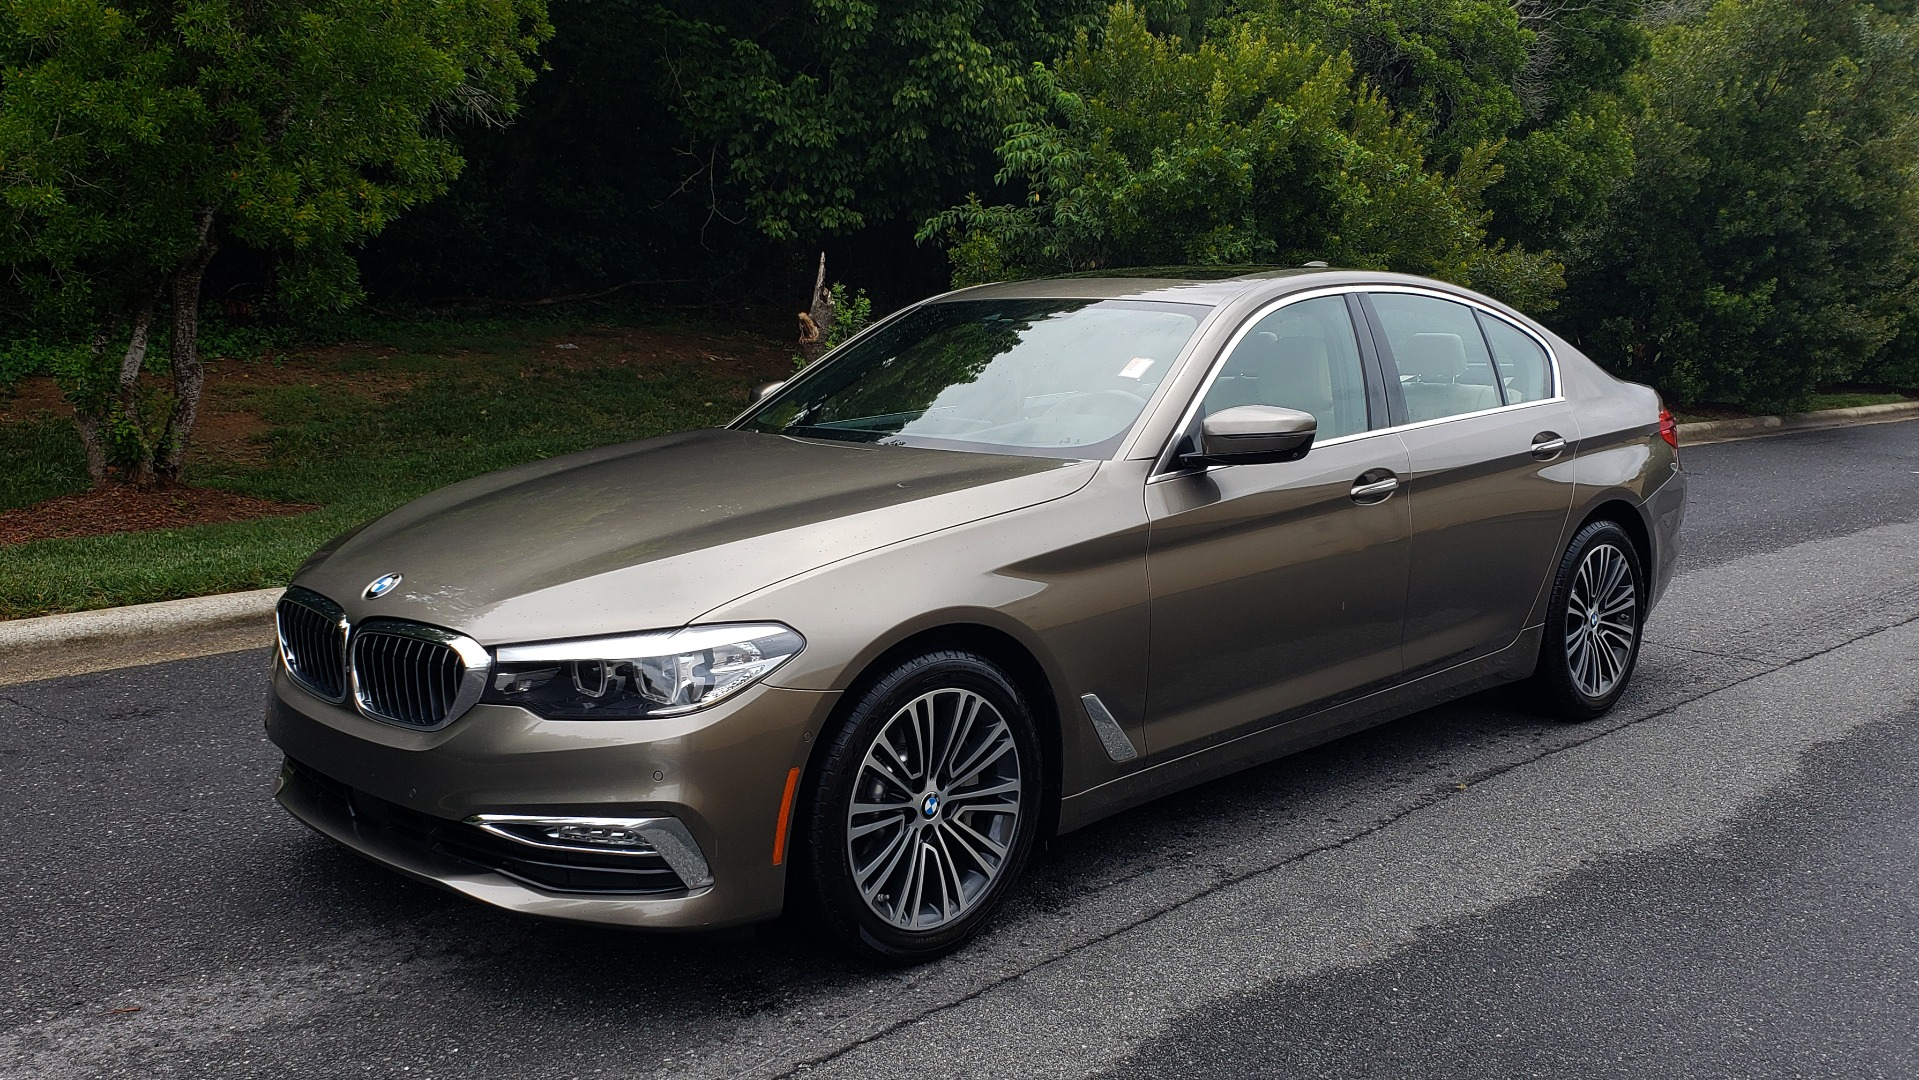 Used 2017 BMW 5 SERIES 530I PREMIUM / NAV / SUNROOF / DRVR ASST PLUS II / LUXURY for sale Sold at Formula Imports in Charlotte NC 28227 1